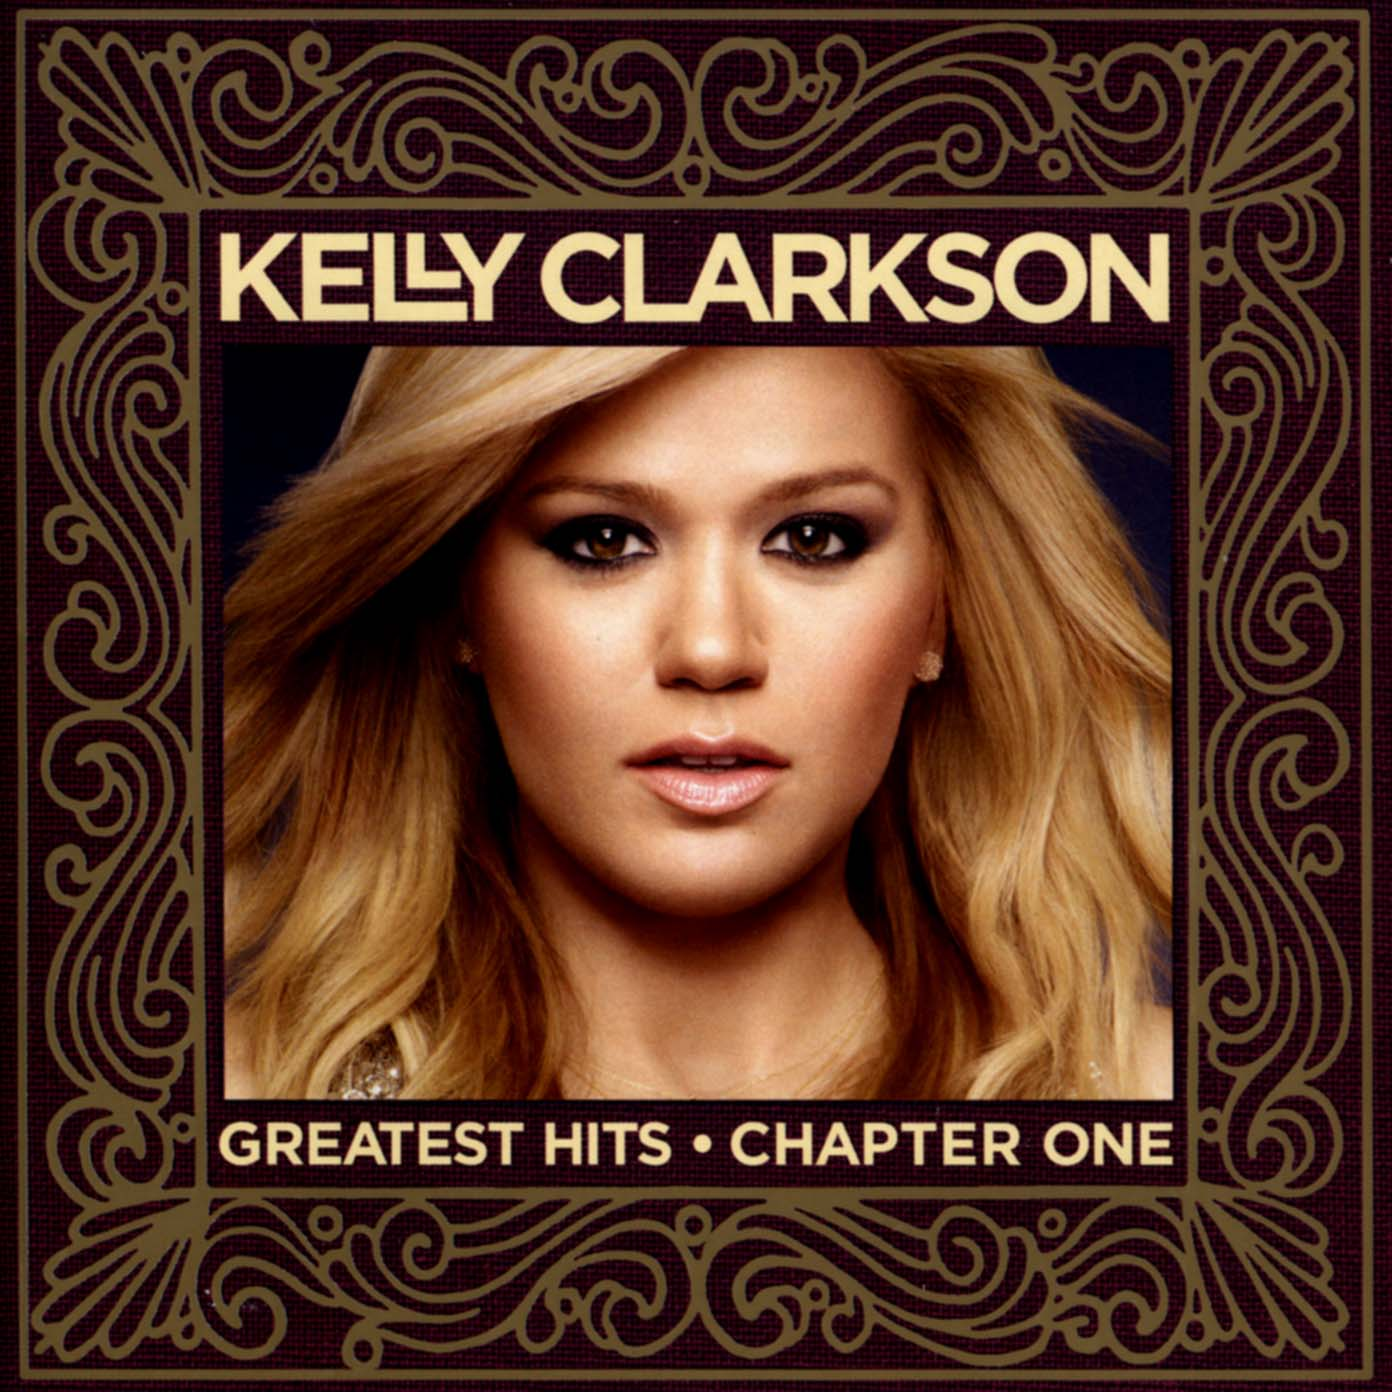 Kelly Clarkson: Greatest Hits - Chapter One